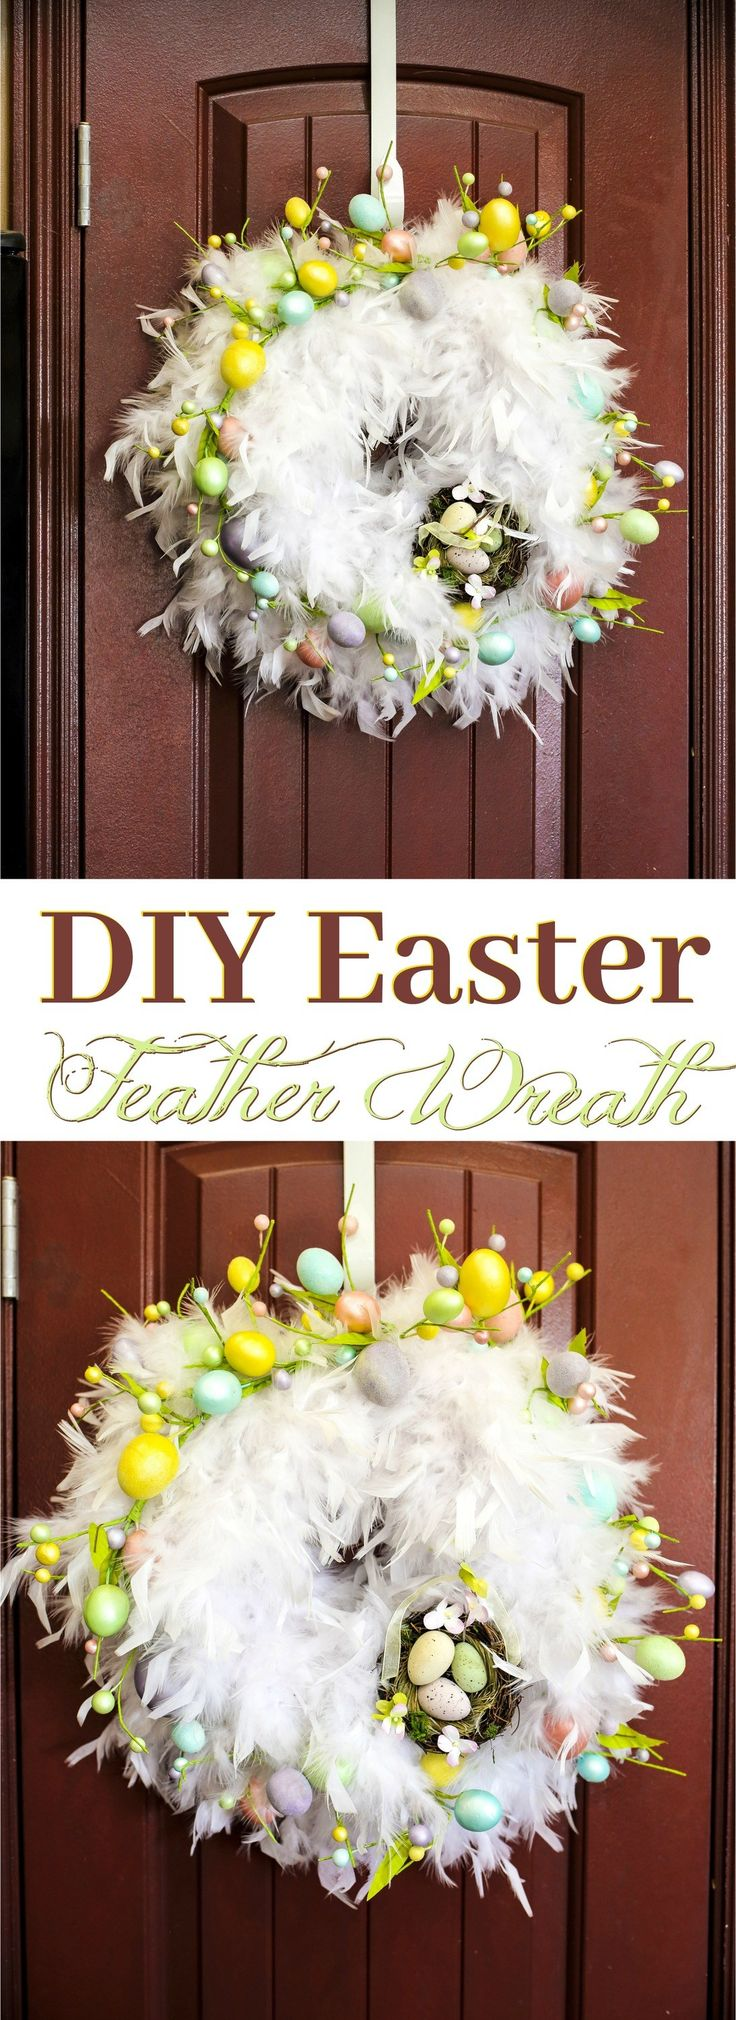 Make a statement with a stunning, chic DIY feather Easter Wreath in only 30 minutes! This easy DIY Feather Wreath only costs about $25 and is the perfect home accent! via @2creatememories